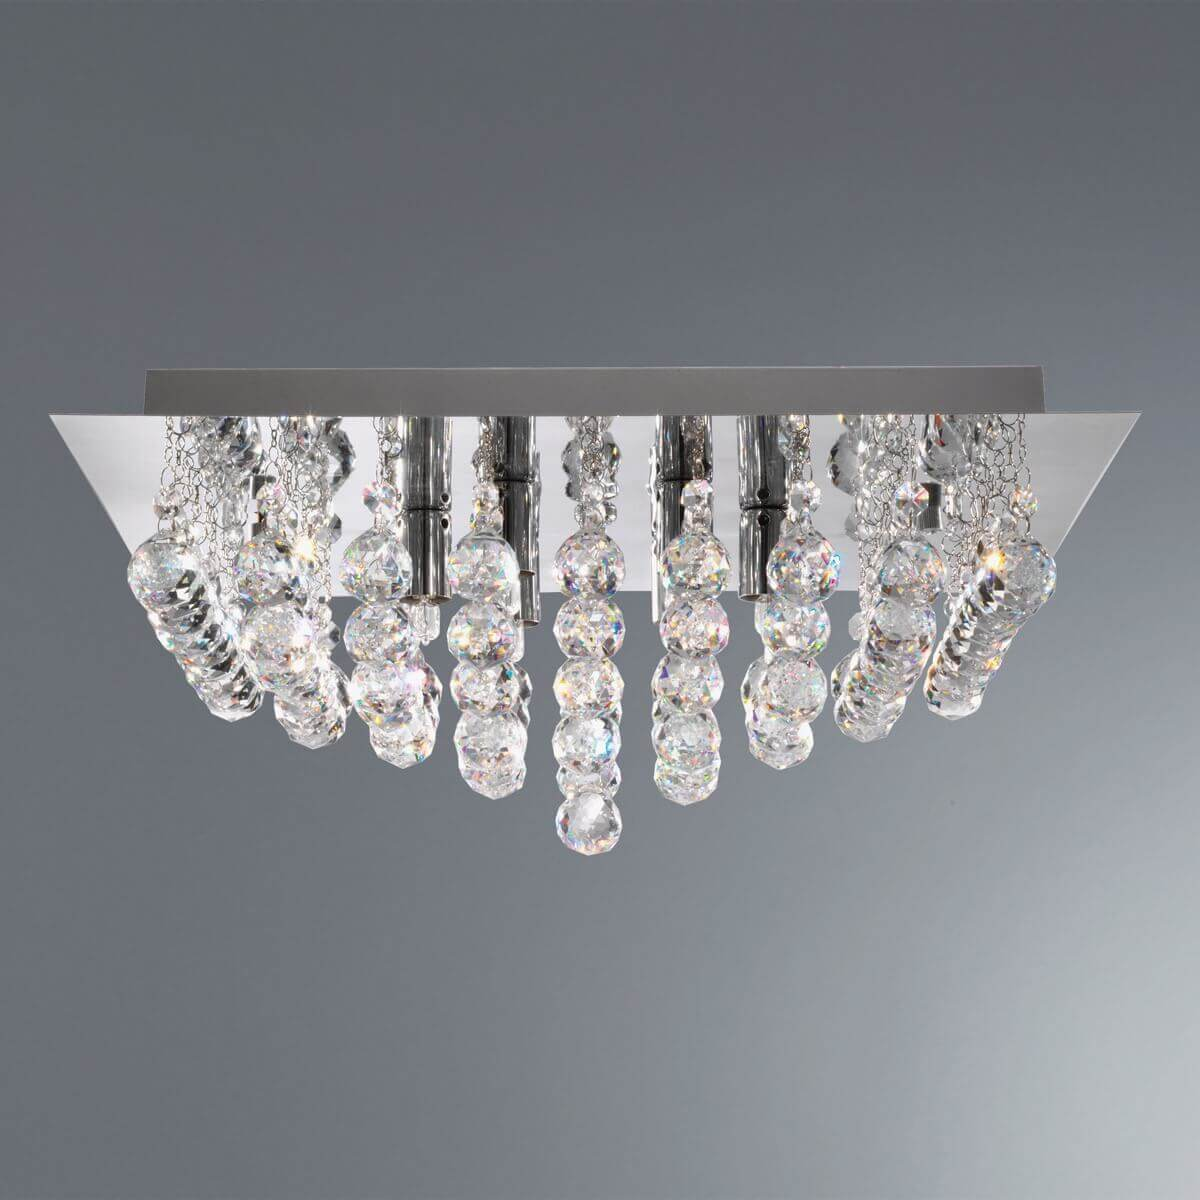 Searchlight Hanna 8 Lights Gold Crystal Ball Flush Ceiling Fitting Chandelier